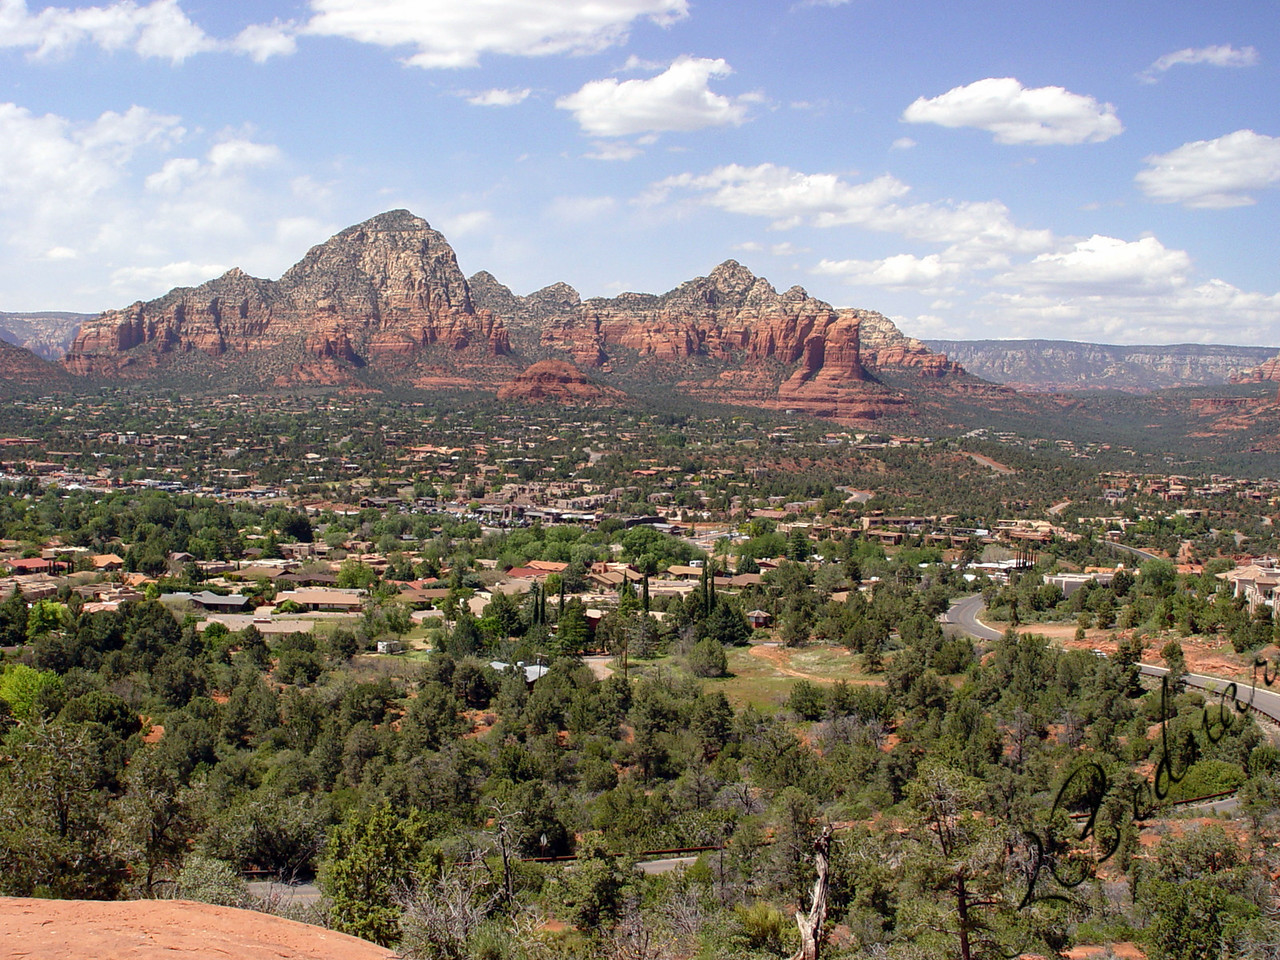 Photo By Robert Bodnar..............................View Of Sedona AZ From top of Rock Formation